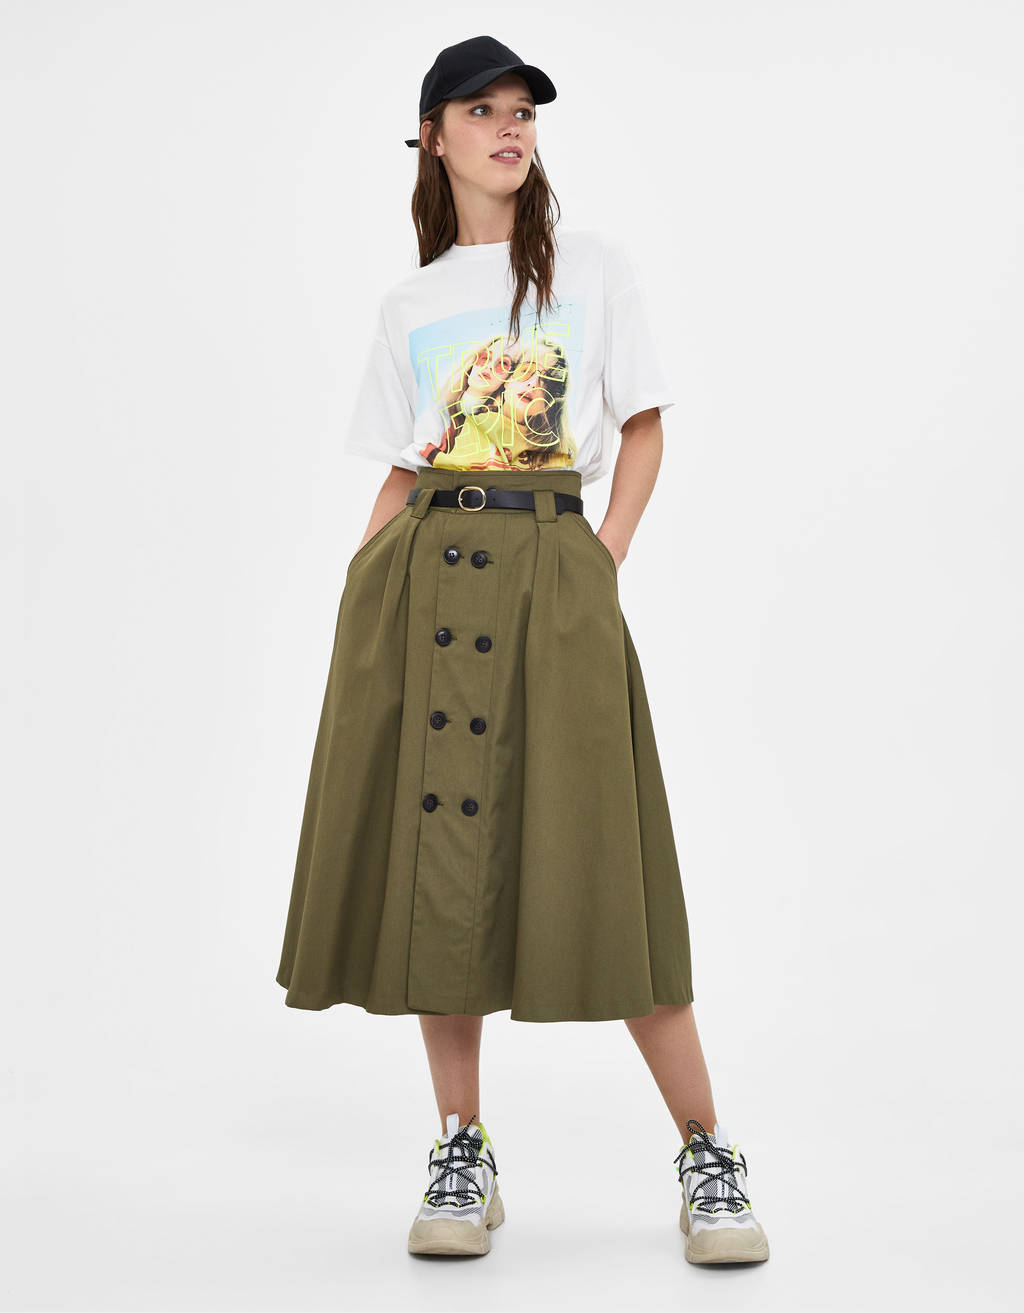 Buttoned skirt with belt